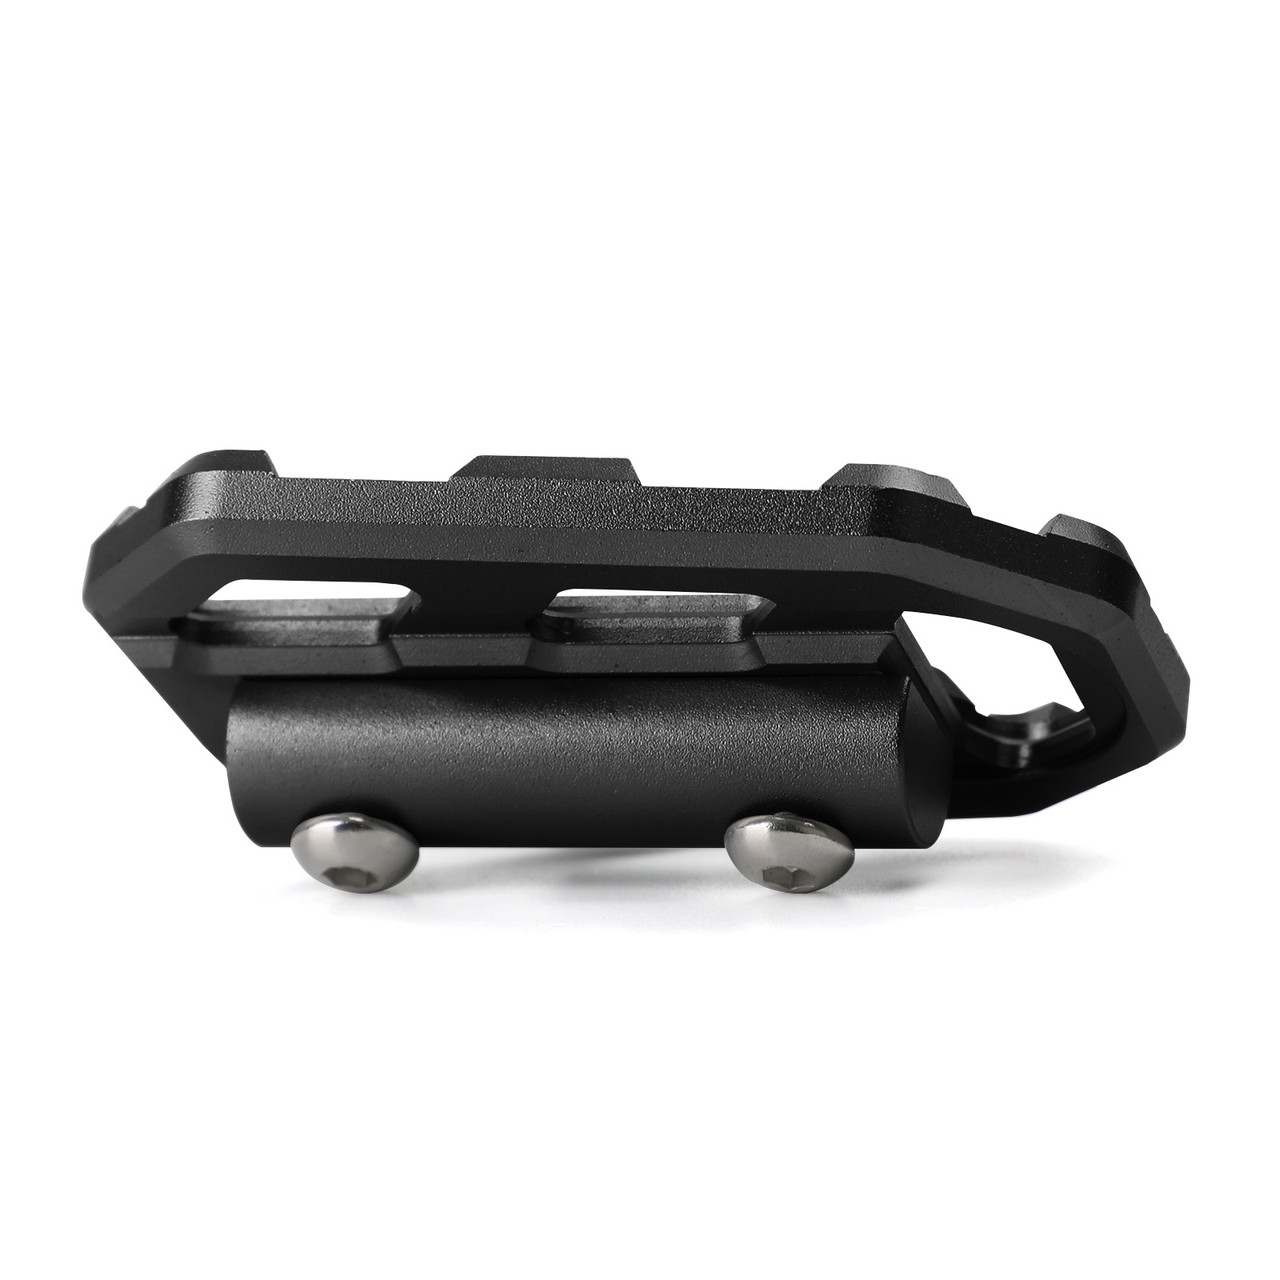 Foot Pedals Footpegs For BMW G310GS 17-19 S1000XR 15-19 BMW R1200GS (Adv.)13-19 Black